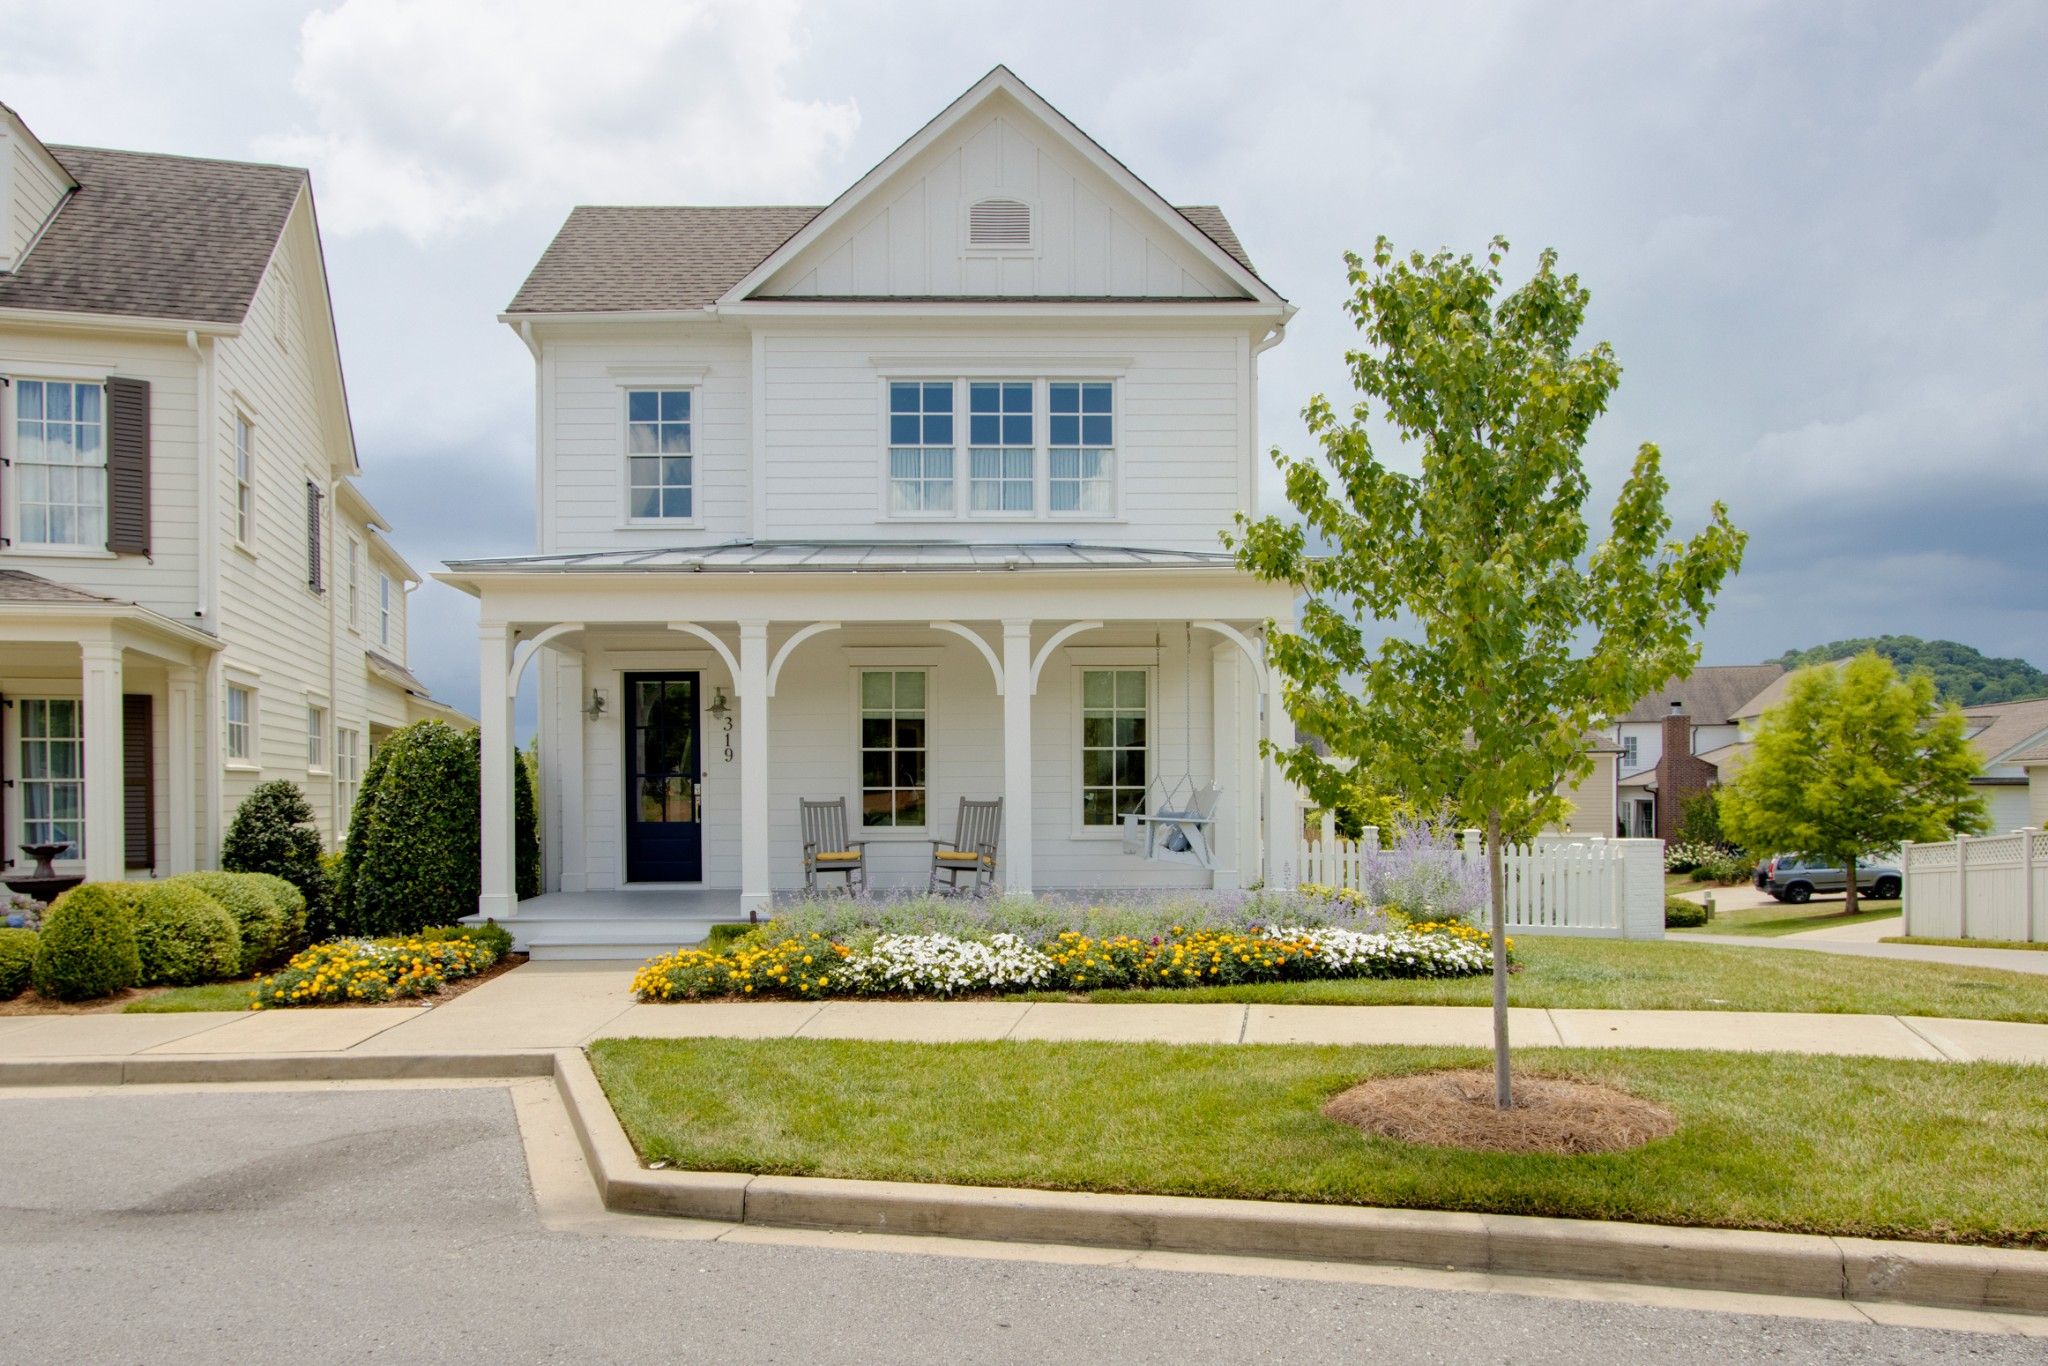 This beautiful coastal farmhouse is situated on a quiet cul-de-sac in the highly coveted Berry Farms neighborhood. With its long list of premium upgrades, gorgeous design, and immaculate outdoor space- this home is a must see!